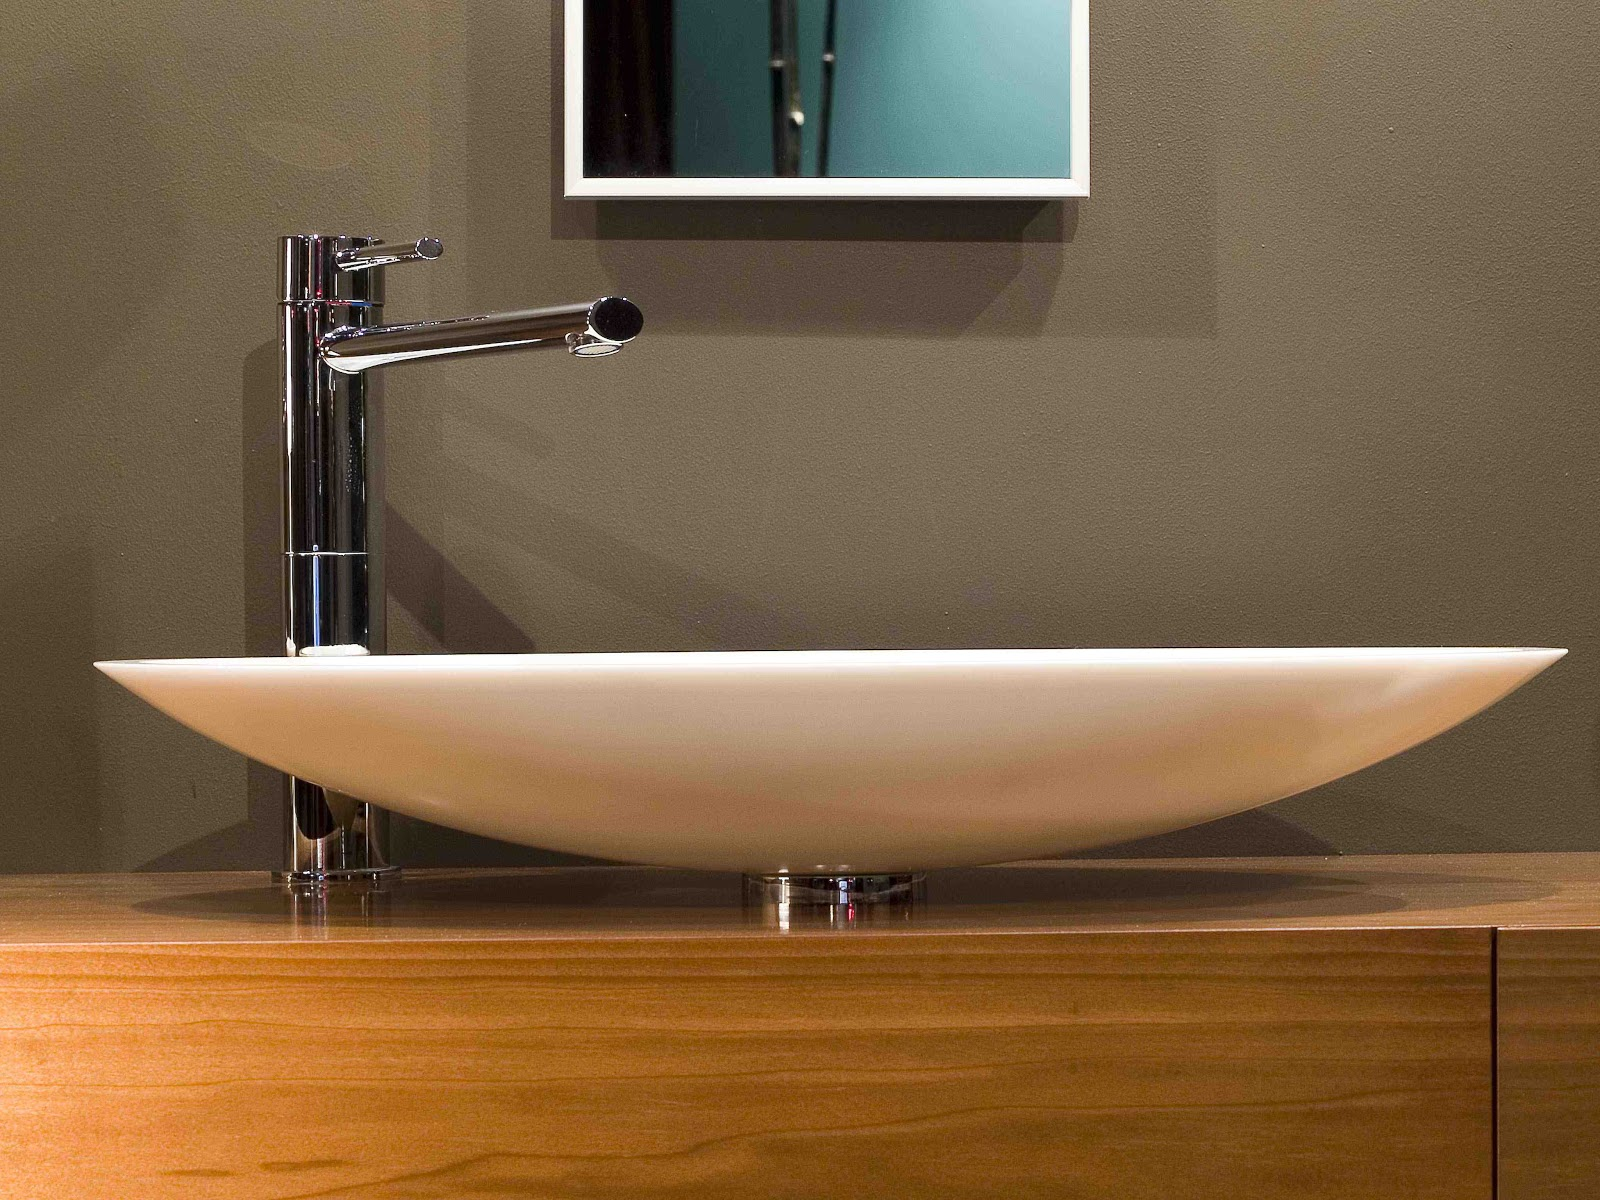 Minosa: The Ovo washbasin by Minosa